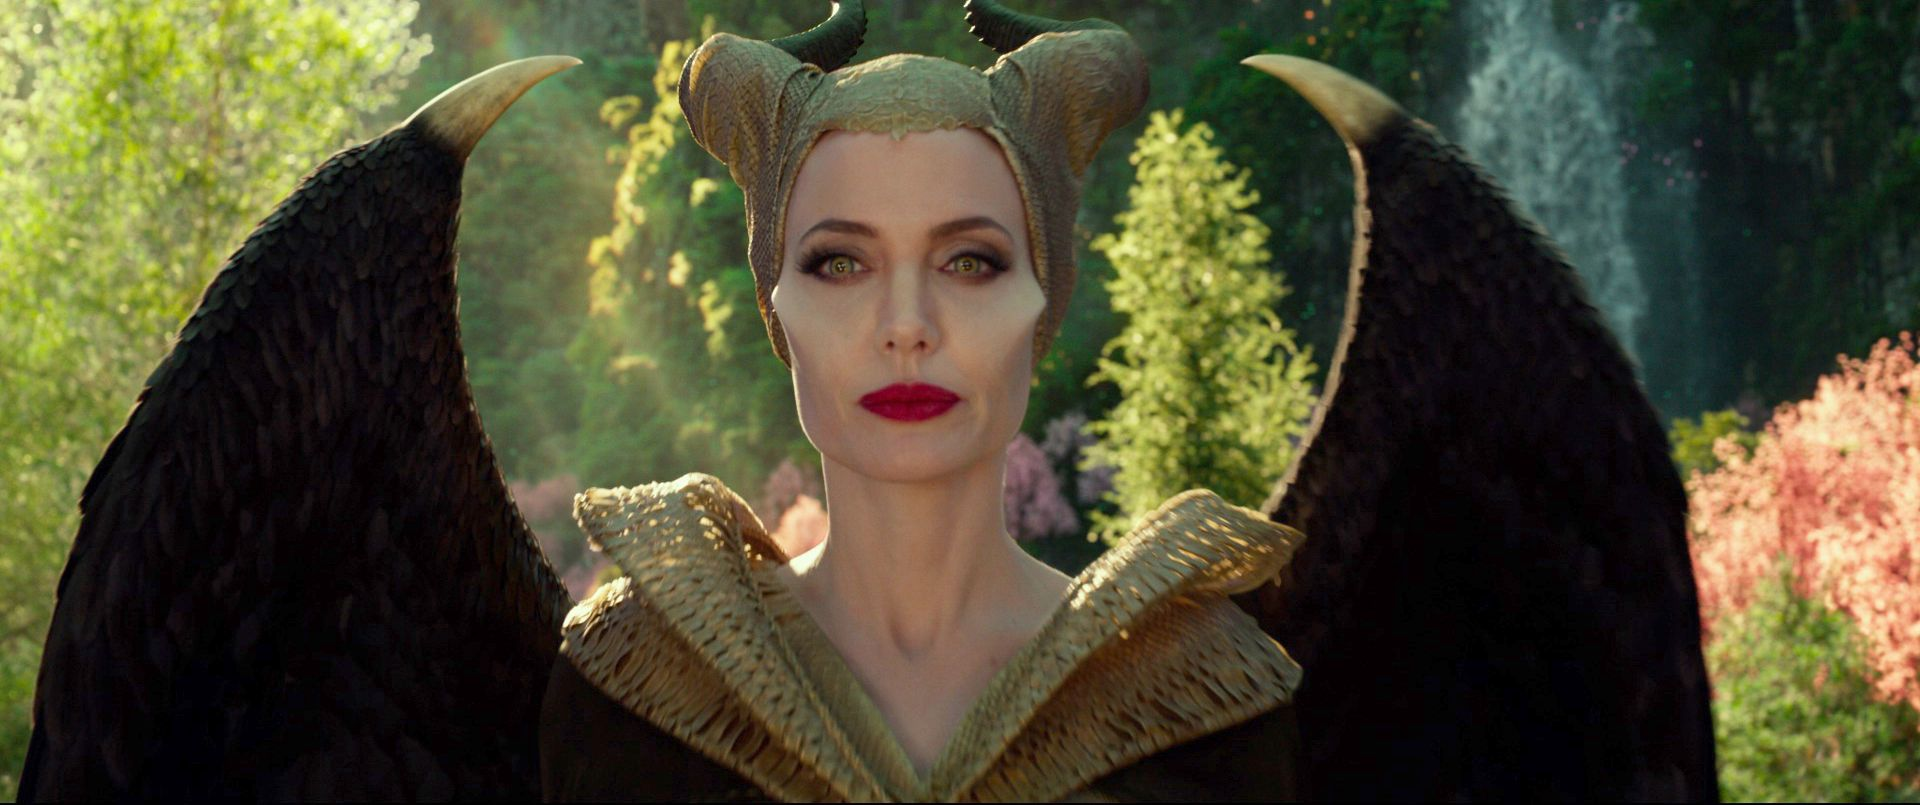 Angelina Jolie On The Personal Nature Of Maleficent 2 Collider